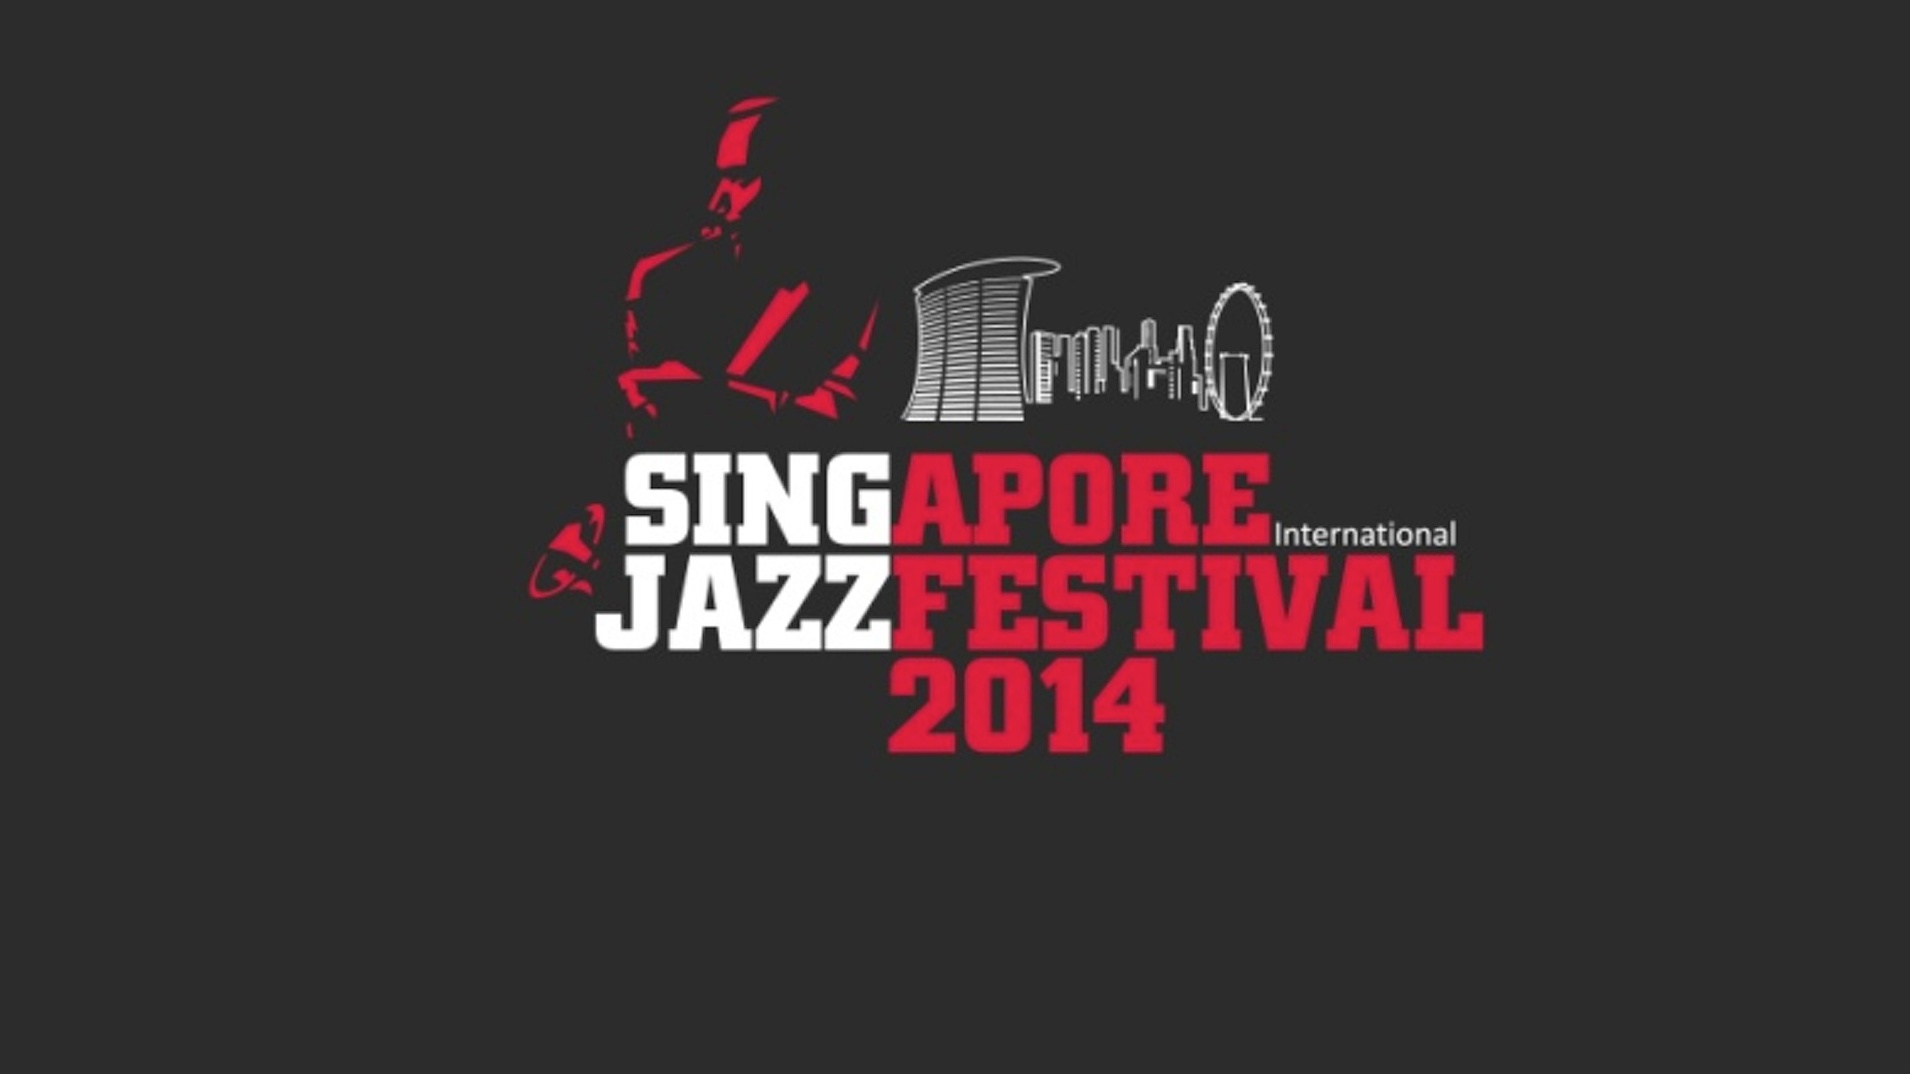 Singapore International Jazz Festival (Day 2)